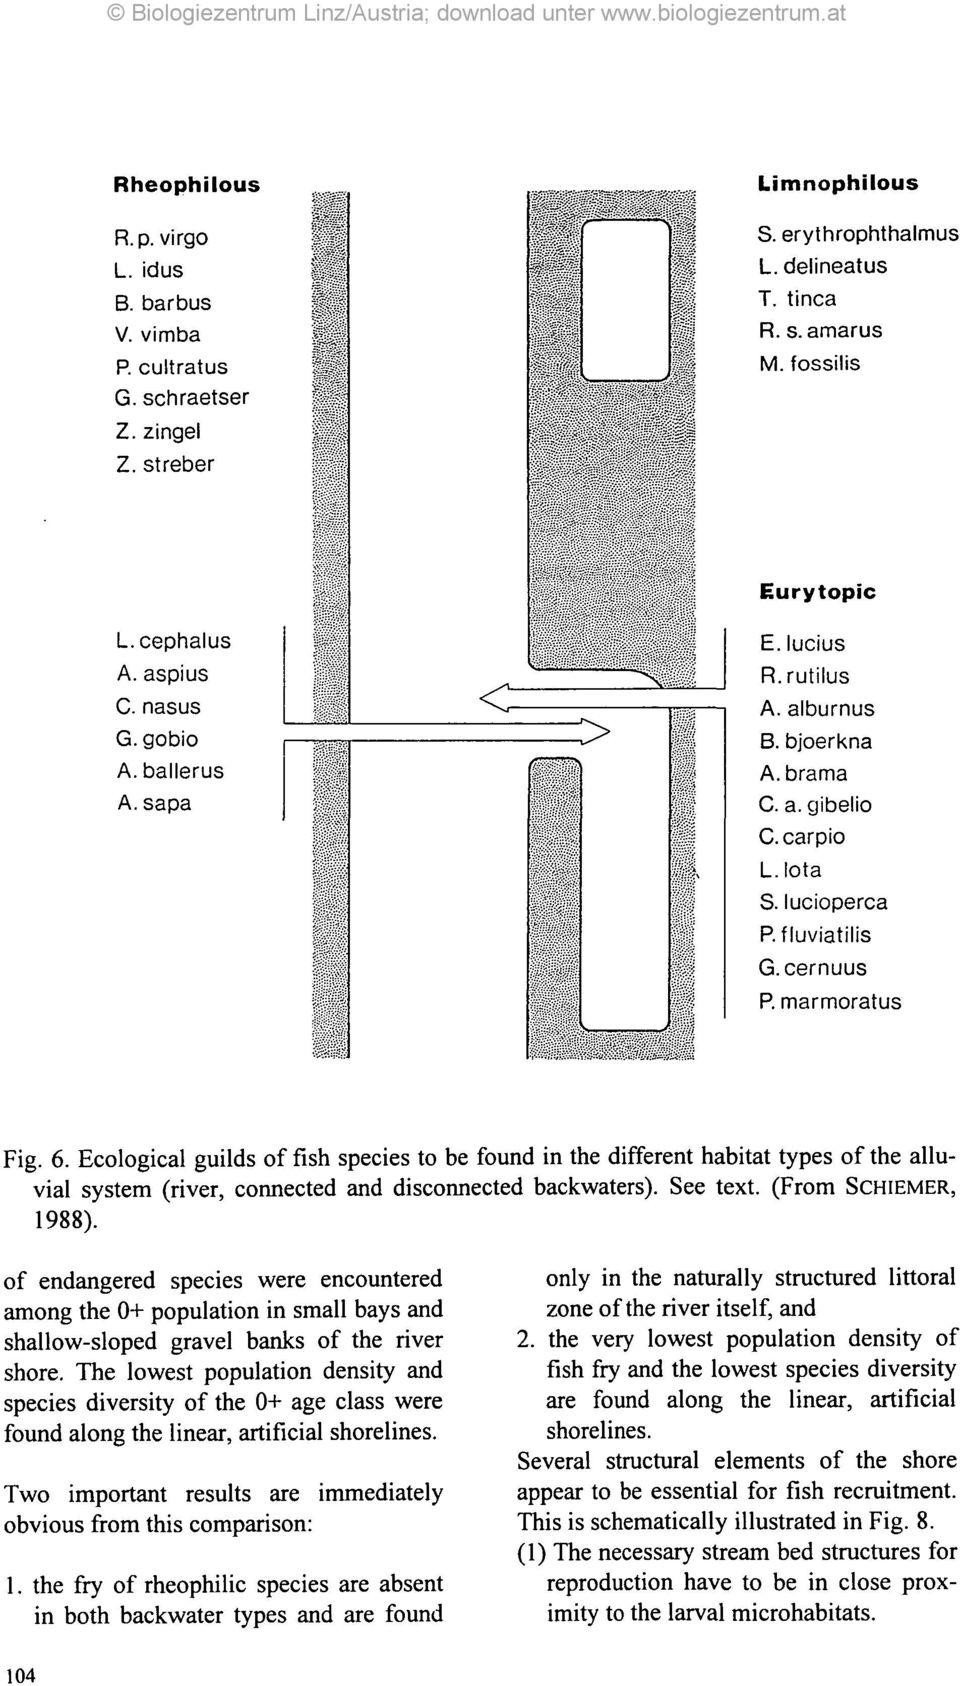 Ecological guilds of fish species to be found in the different habitat types of the alluvial system (river, connected and disconnected backwaters). See text. (From SCHIEMER, 1988).